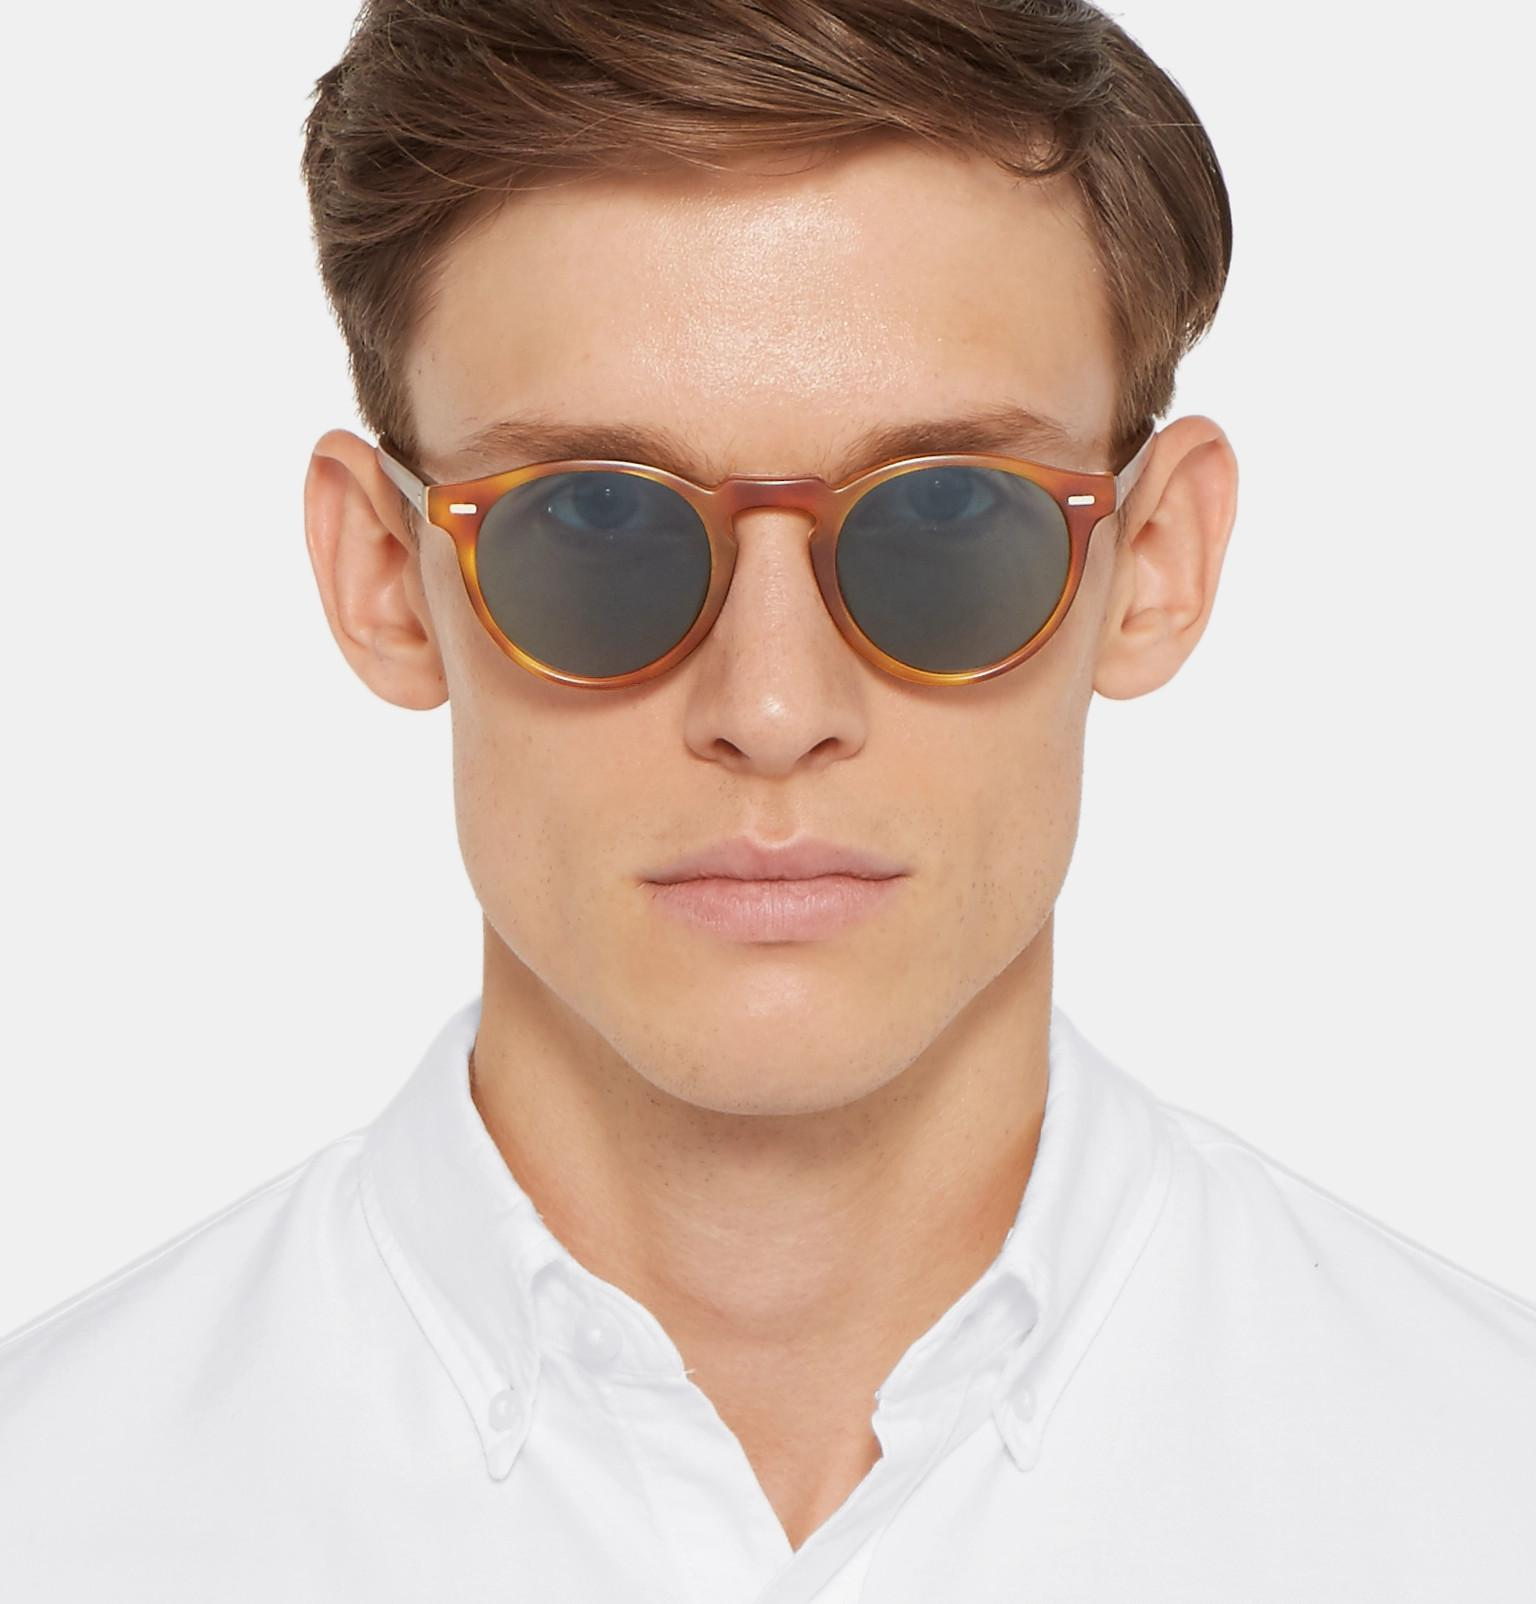 f11a2172c0 Oliver Peoples - Brown Gregory Peck Round-frame Tortoiseshell Acetate  Photochromic Sunglasses for Men -. View fullscreen